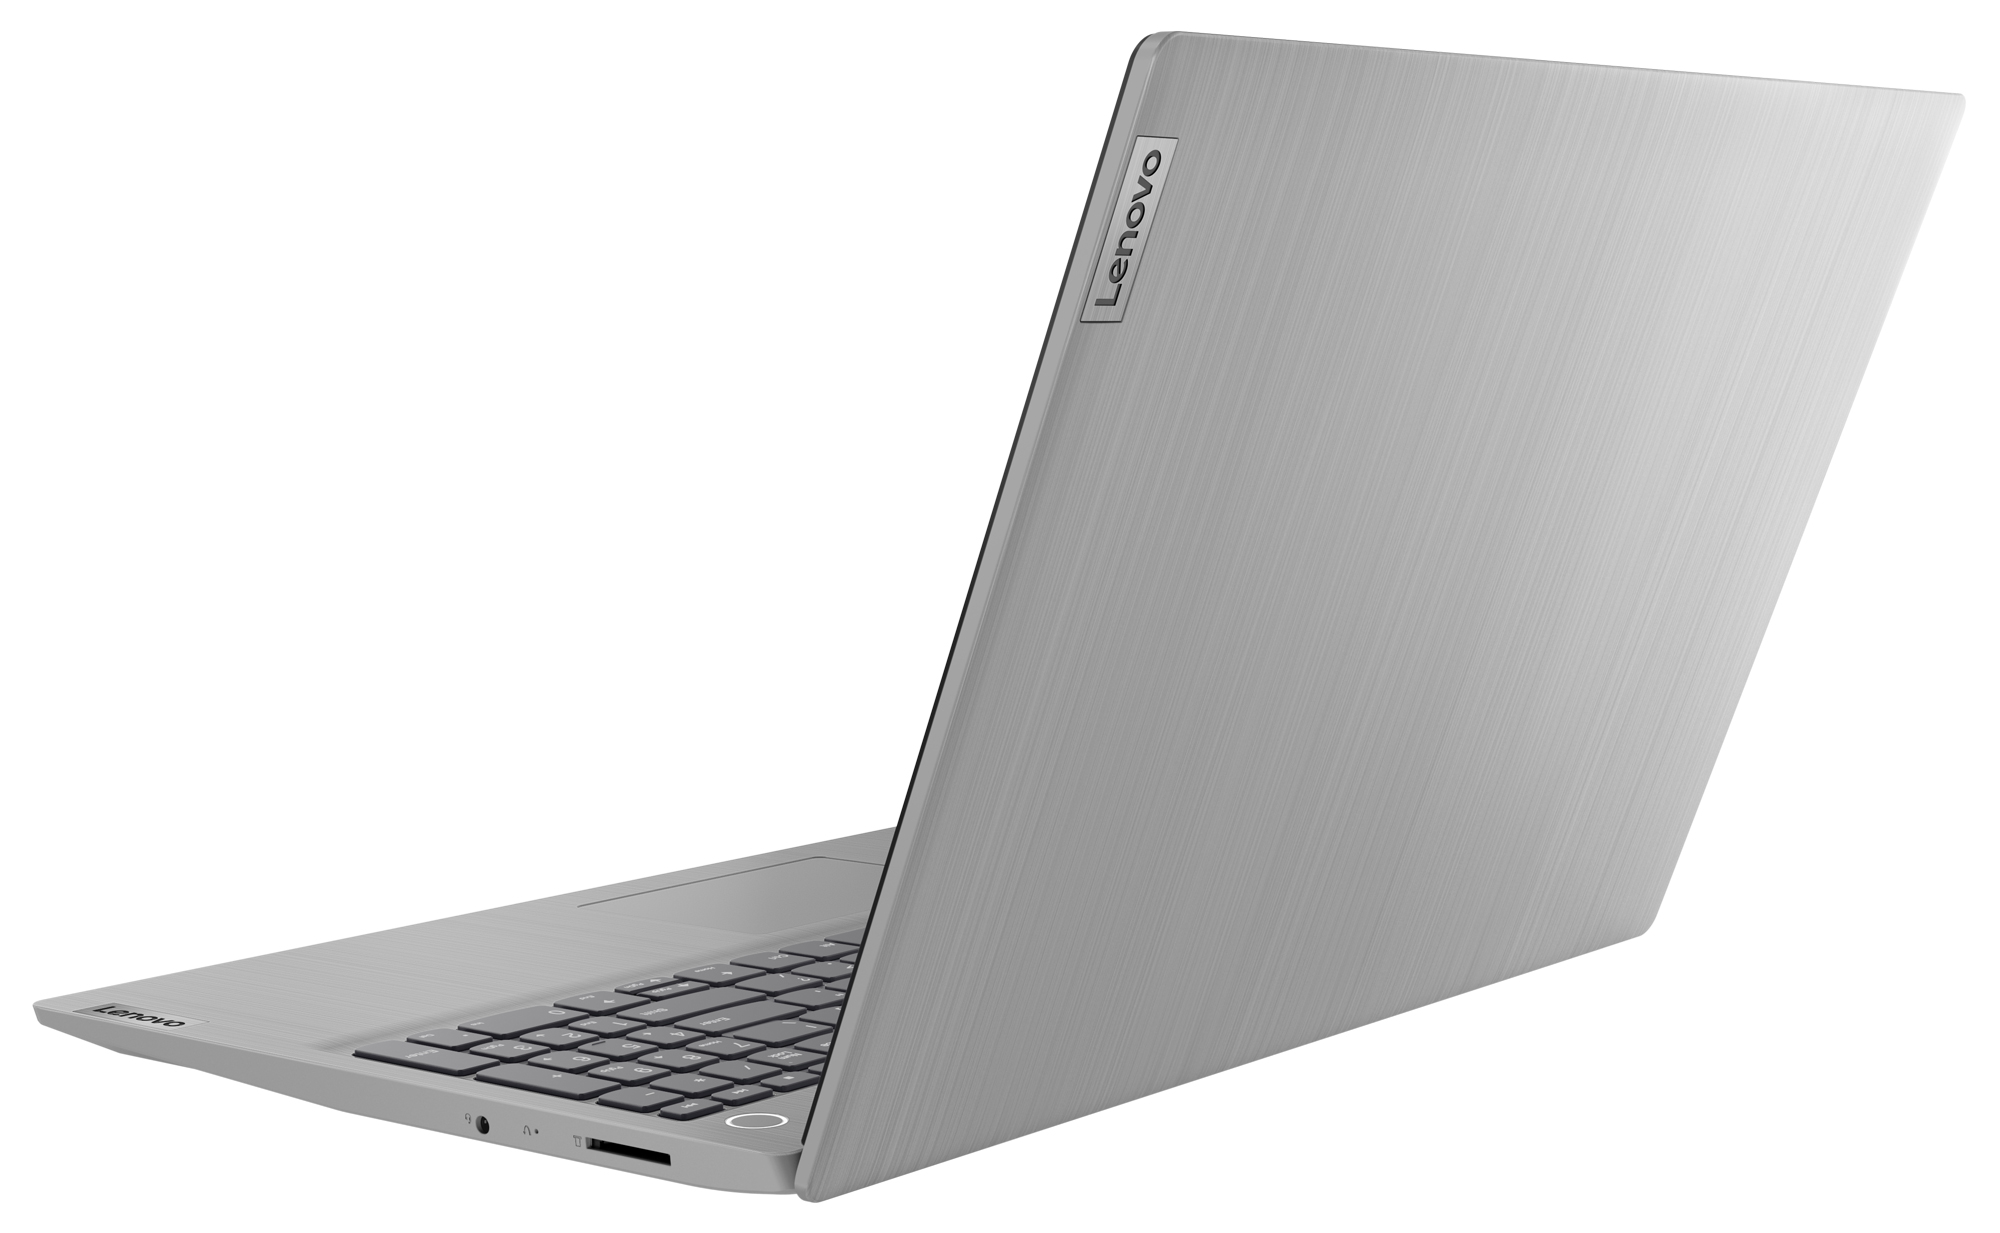 Фото  Ноутбук Lenovo ideapad 3i 15IIL05 Platinum Grey (81WE00V9RE)